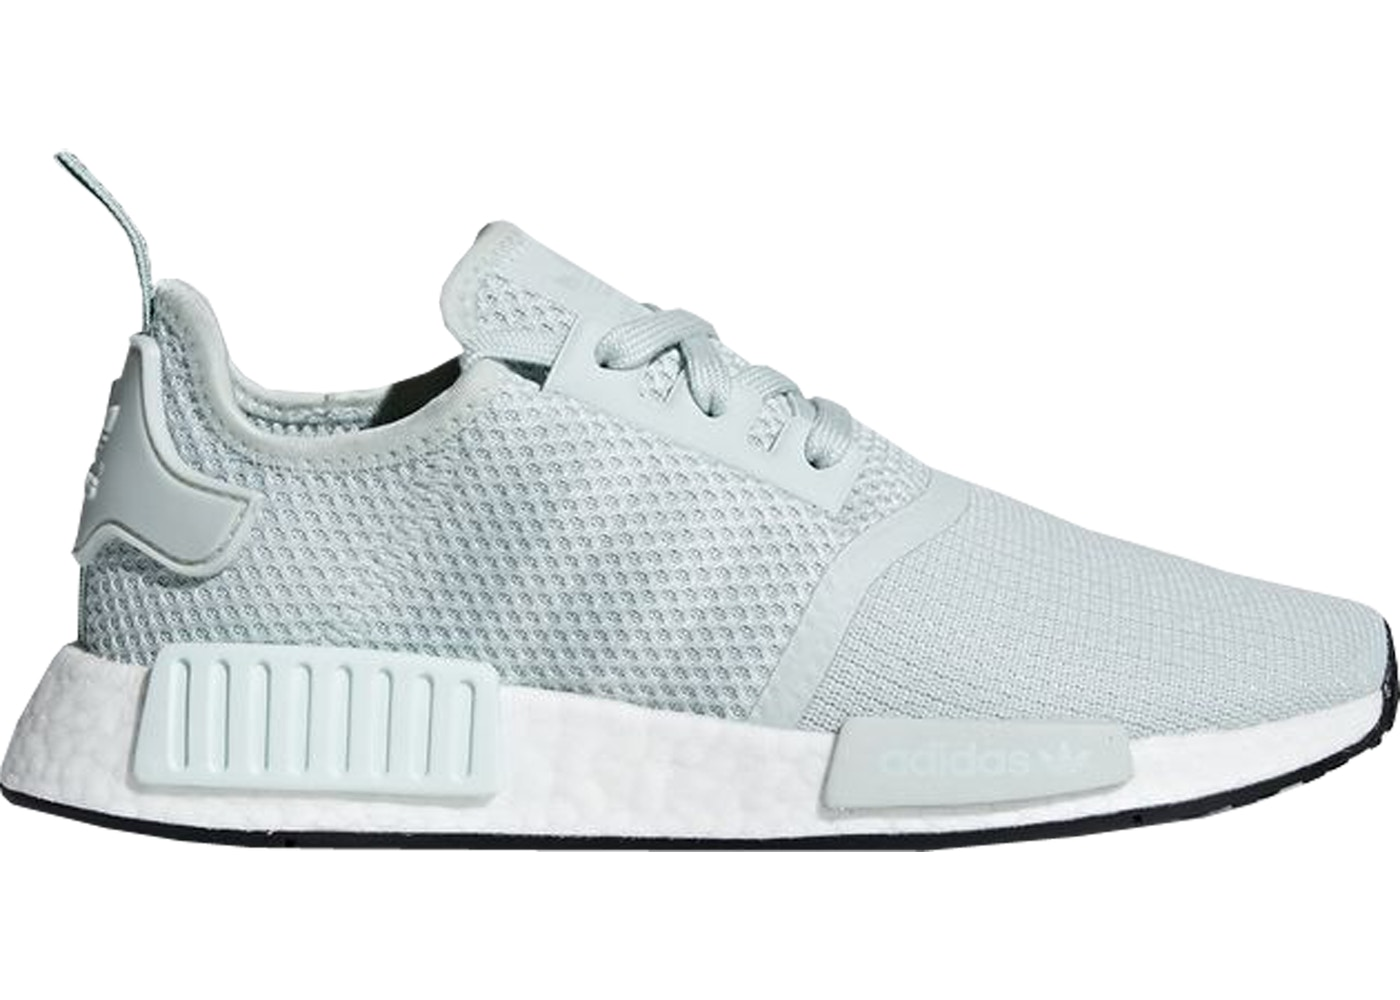 bda798f3f adidas NMD Shoes - Release Date